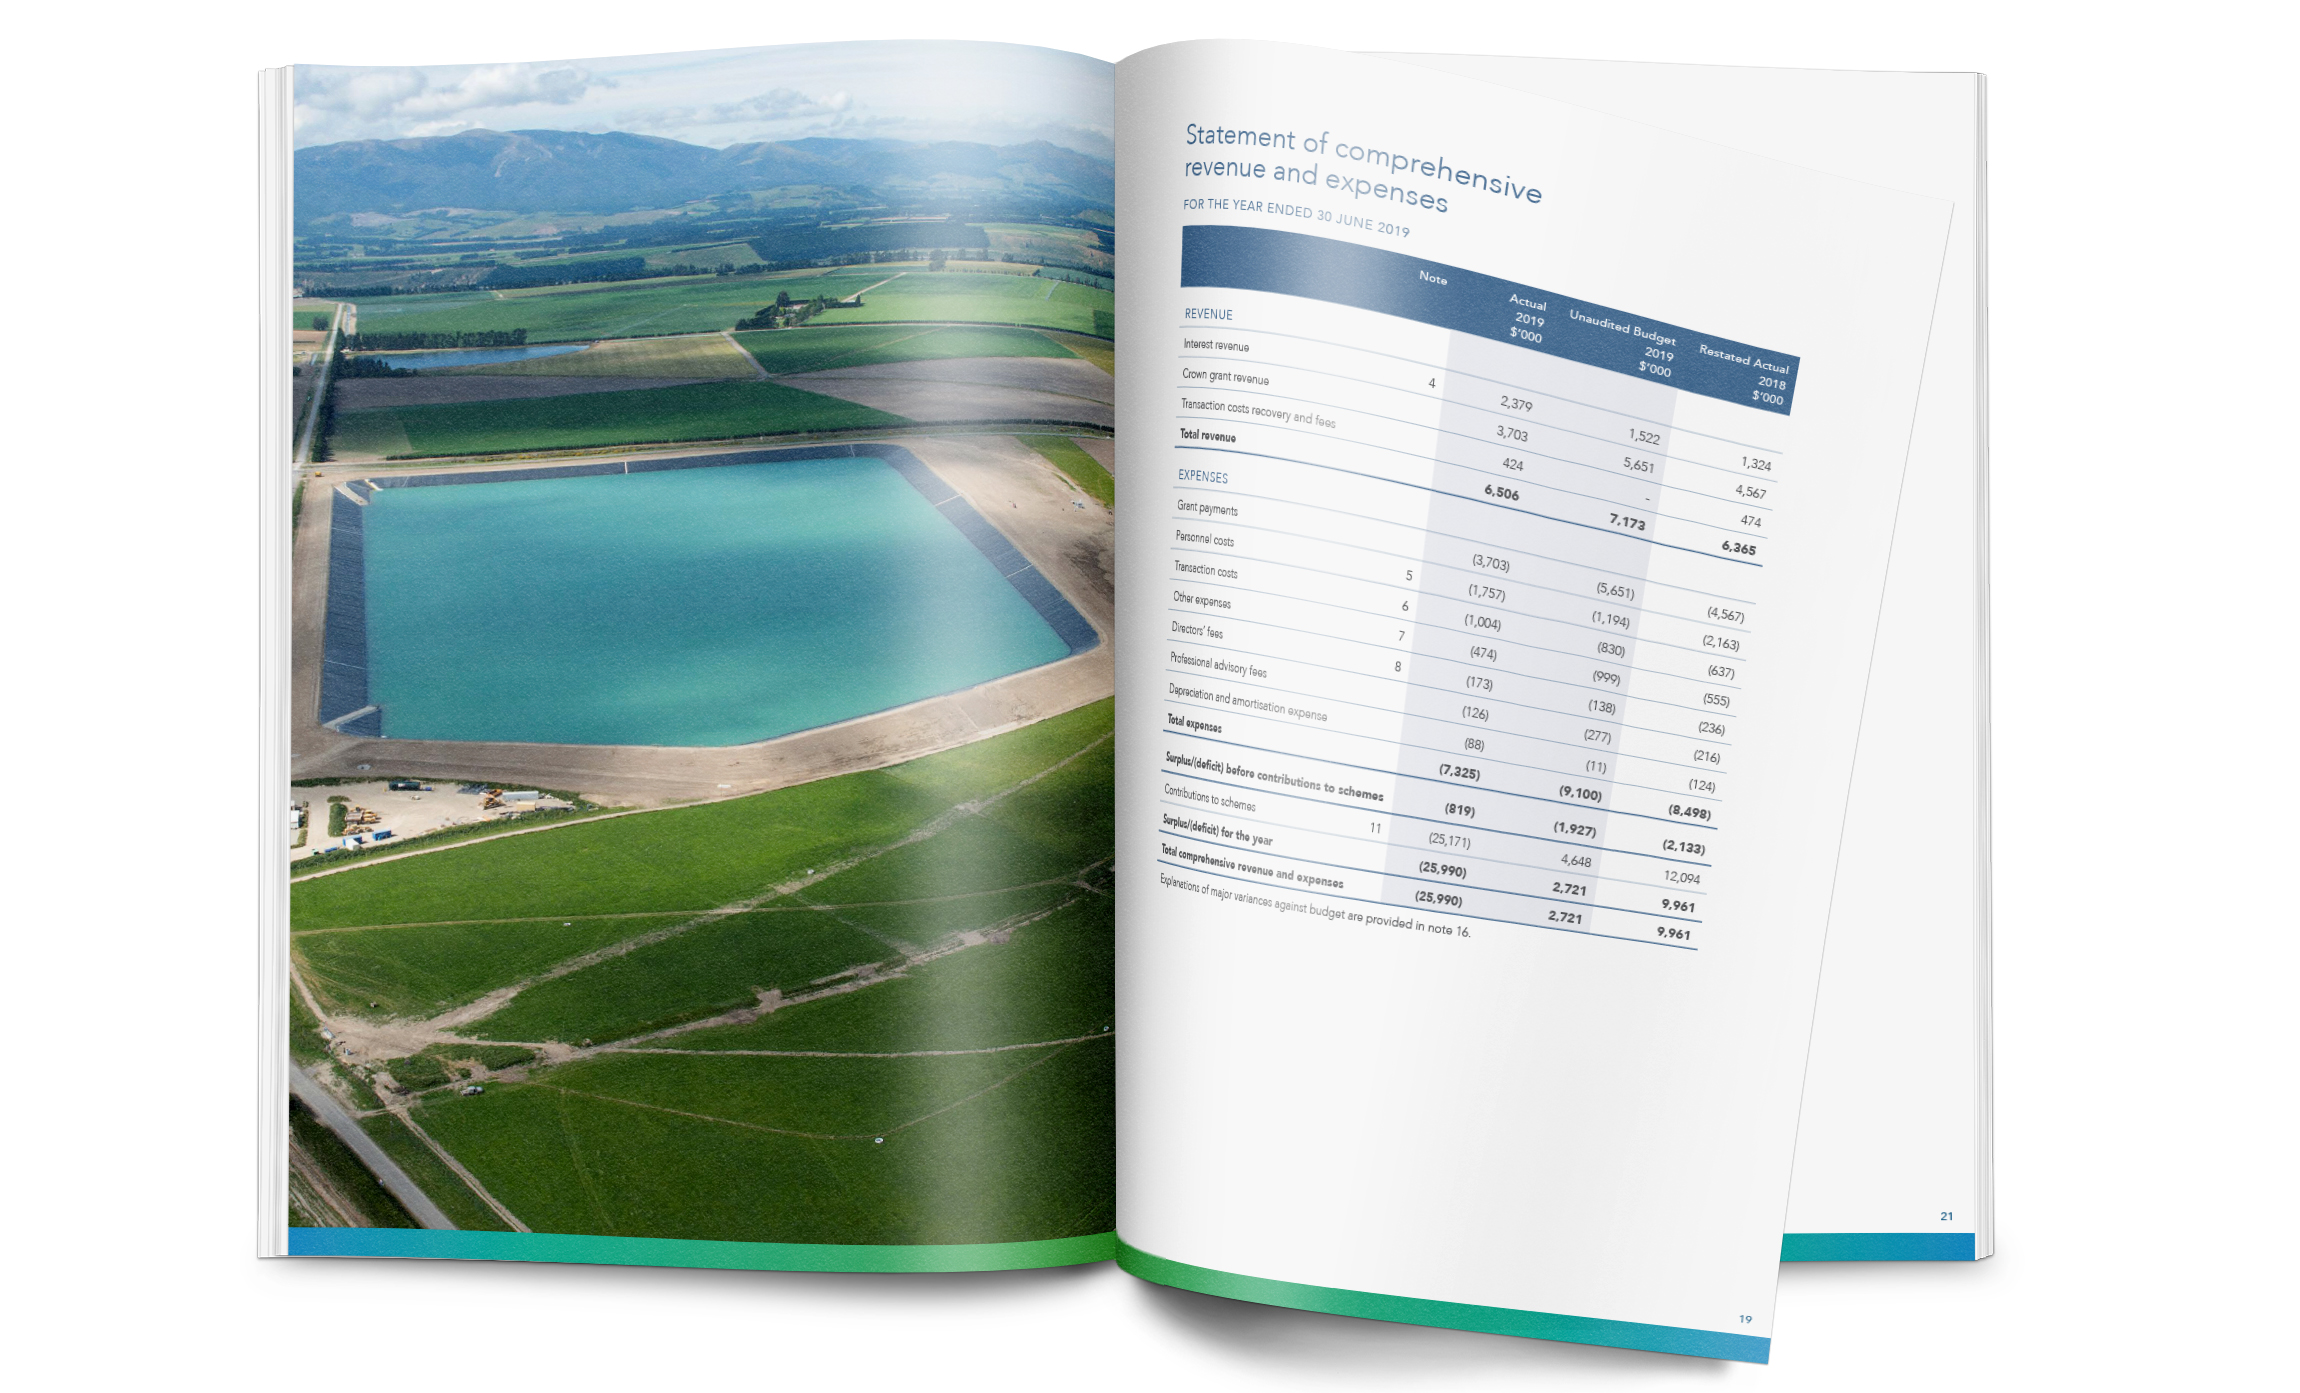 Eden Design Crown Irrigation Annual Report 2019 05